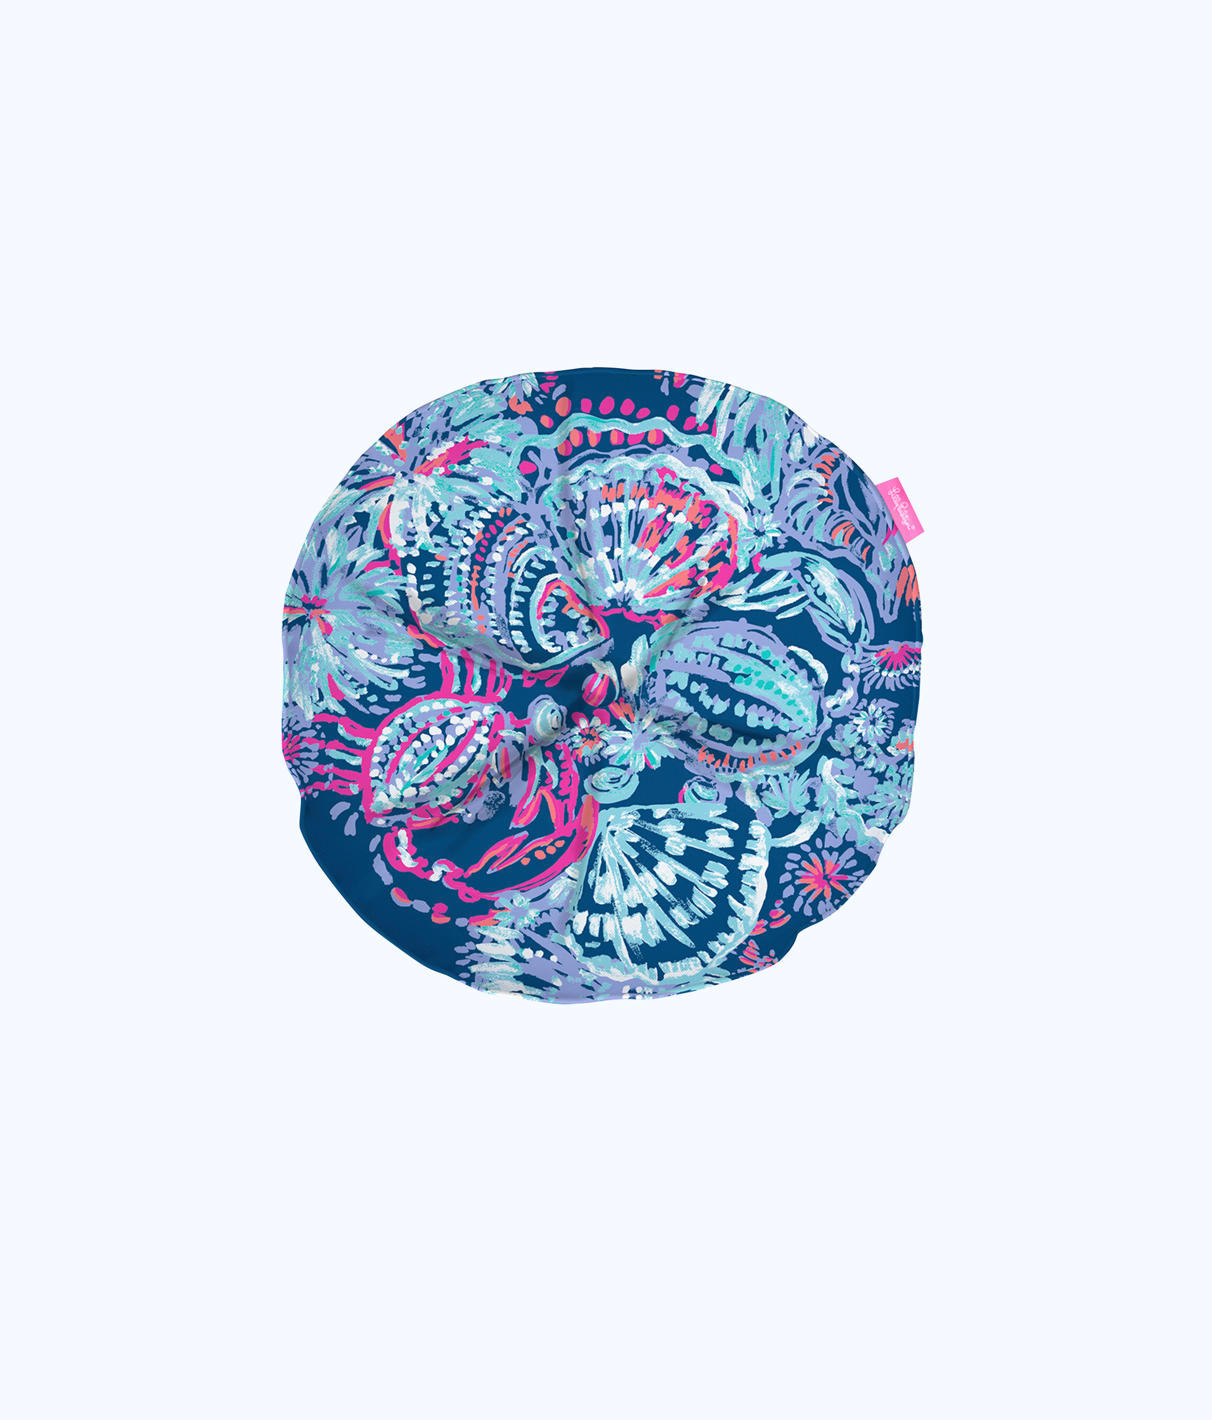 Lilly Pulitzer Lilly Pulitzer Round Pillow